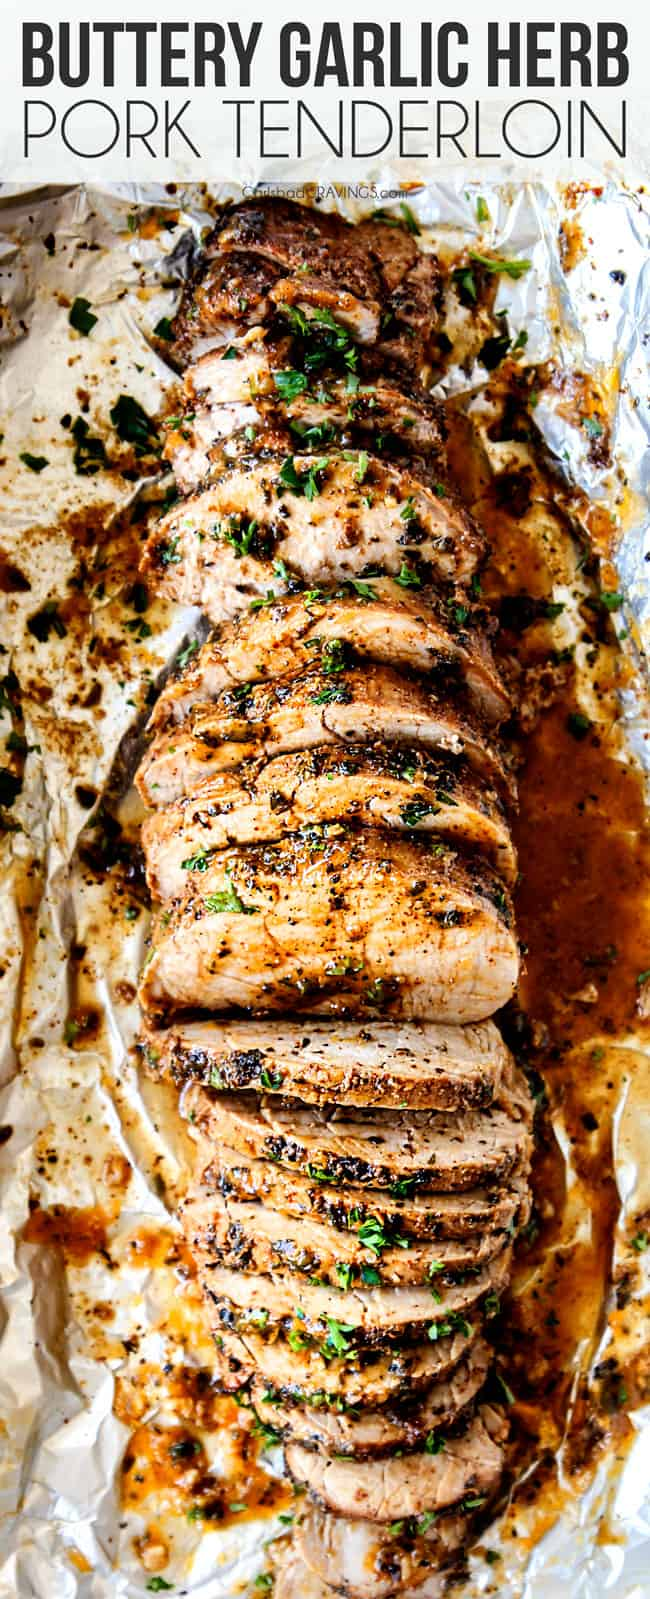 Best Baked Pork Tenderloin With Garlic Herb Butter Video